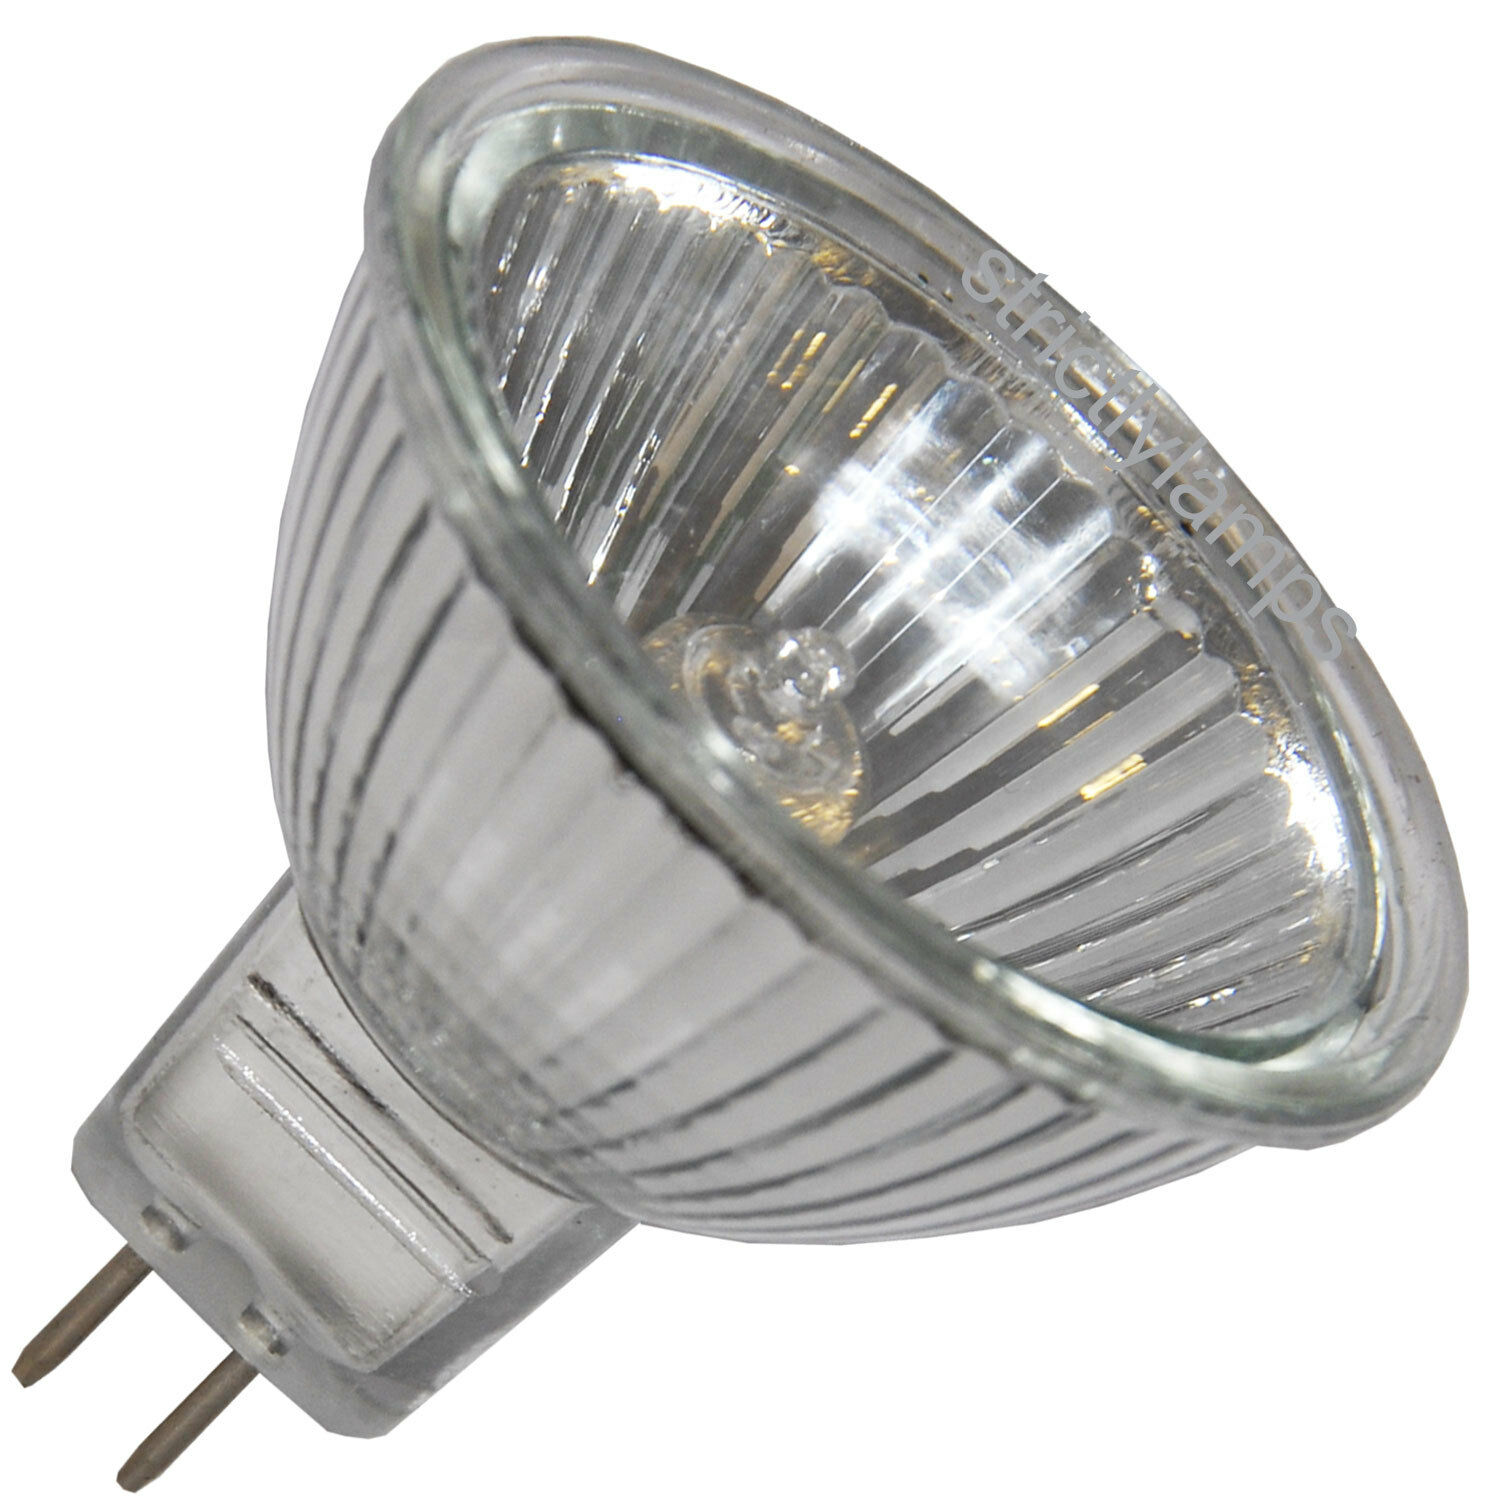 5 x mr16 10w halogen light bulbs 12v delivered ebay for Where to buy halogen bulbs